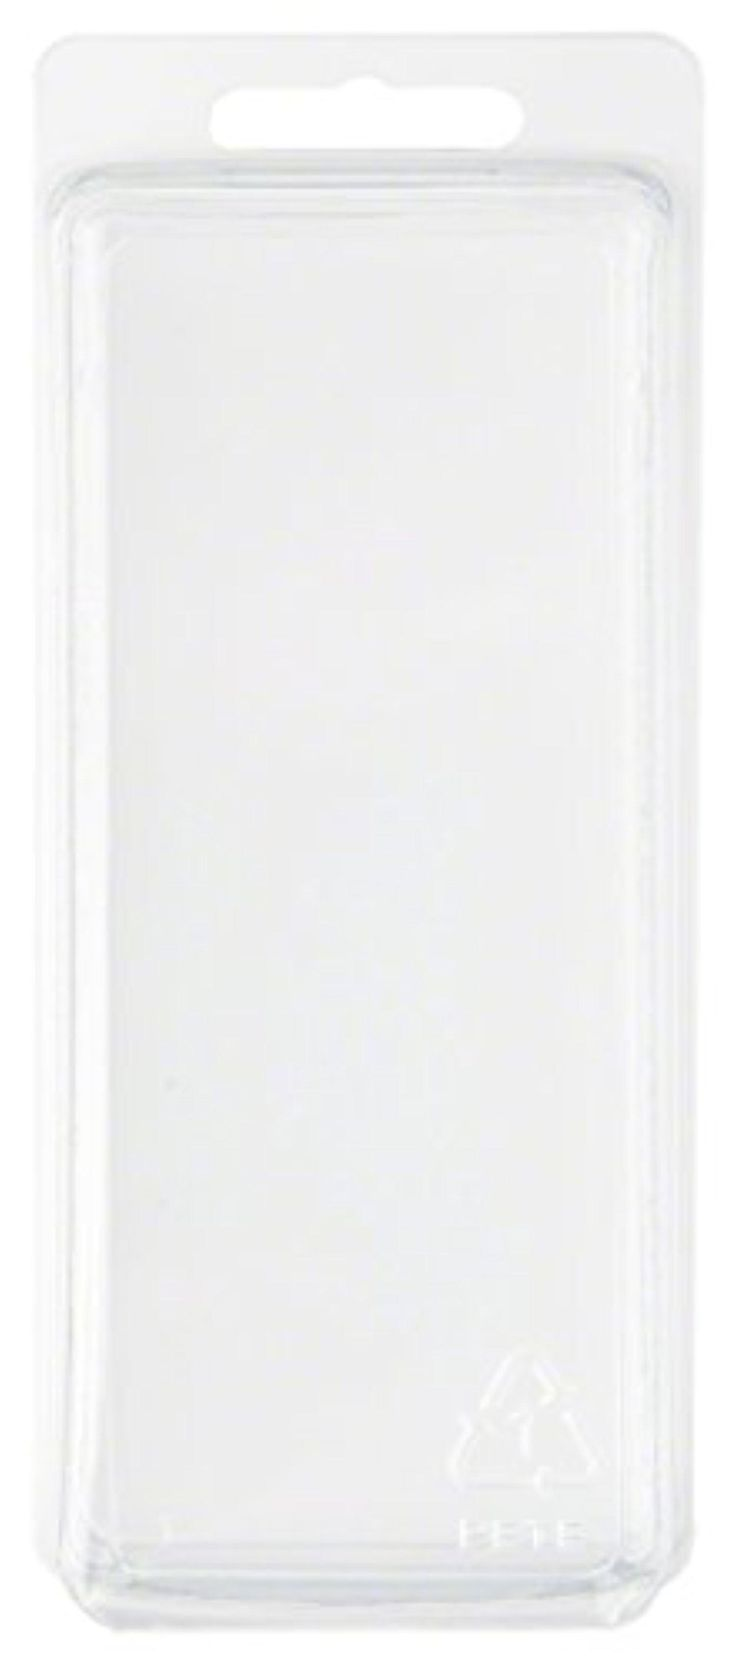 "Clear Plastic Clamshell Package / Storage Container, 5.19"" H x 2.19"" W x 2.38"" D - Brought to you by Avarsha.com"